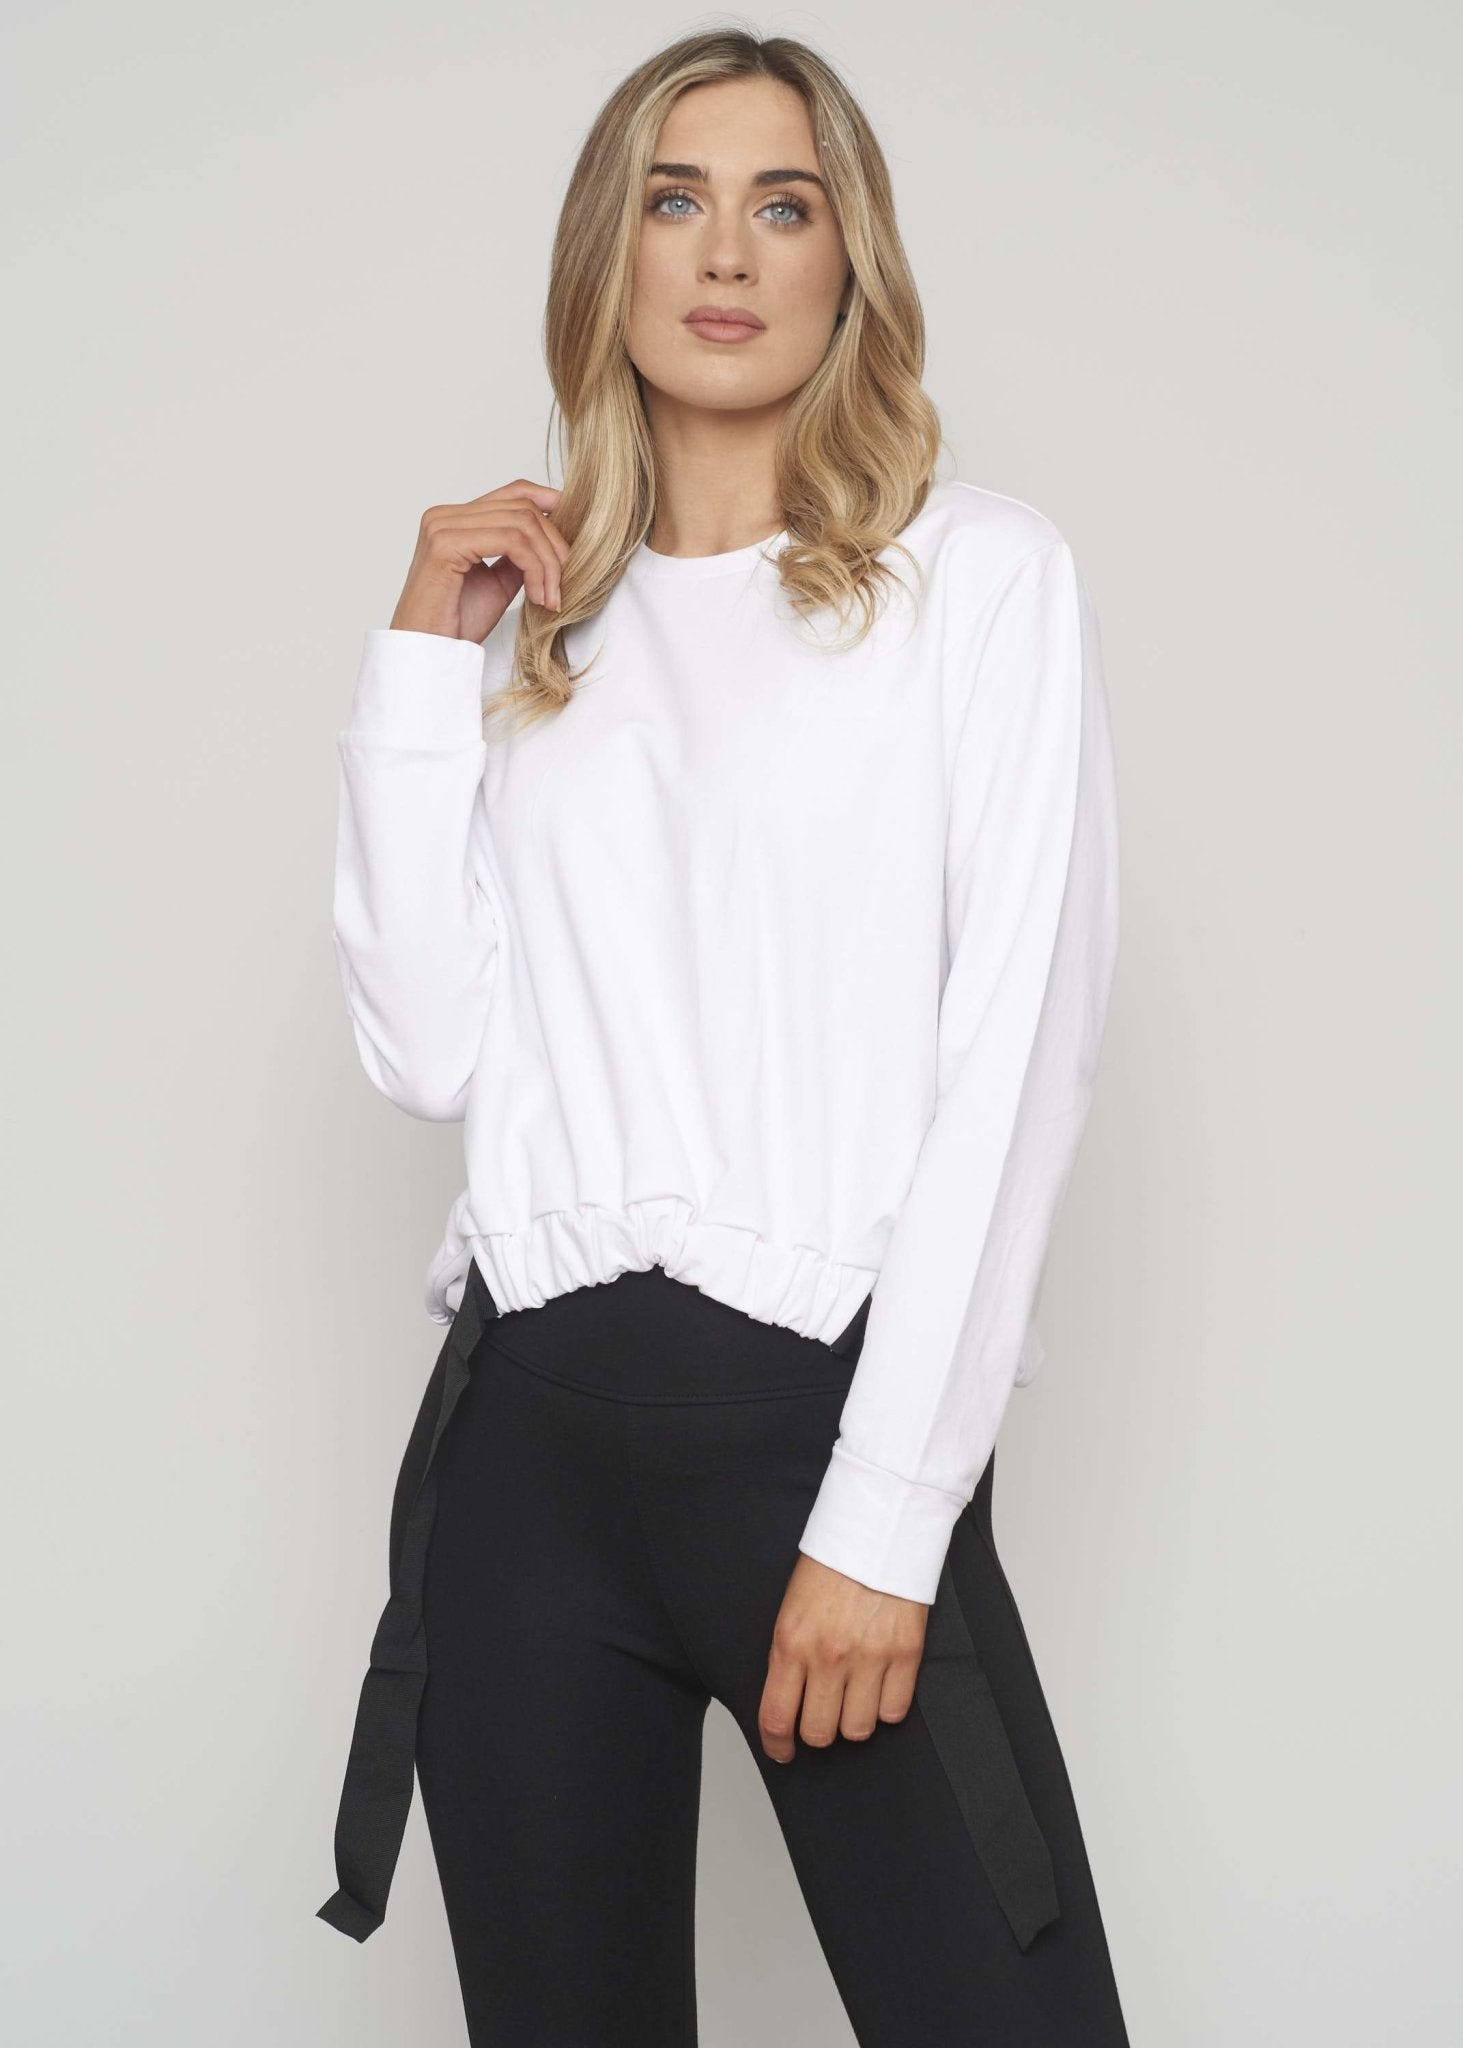 Sophia Drawstring Waist Sweatshirt In White - The Walk in Wardrobe